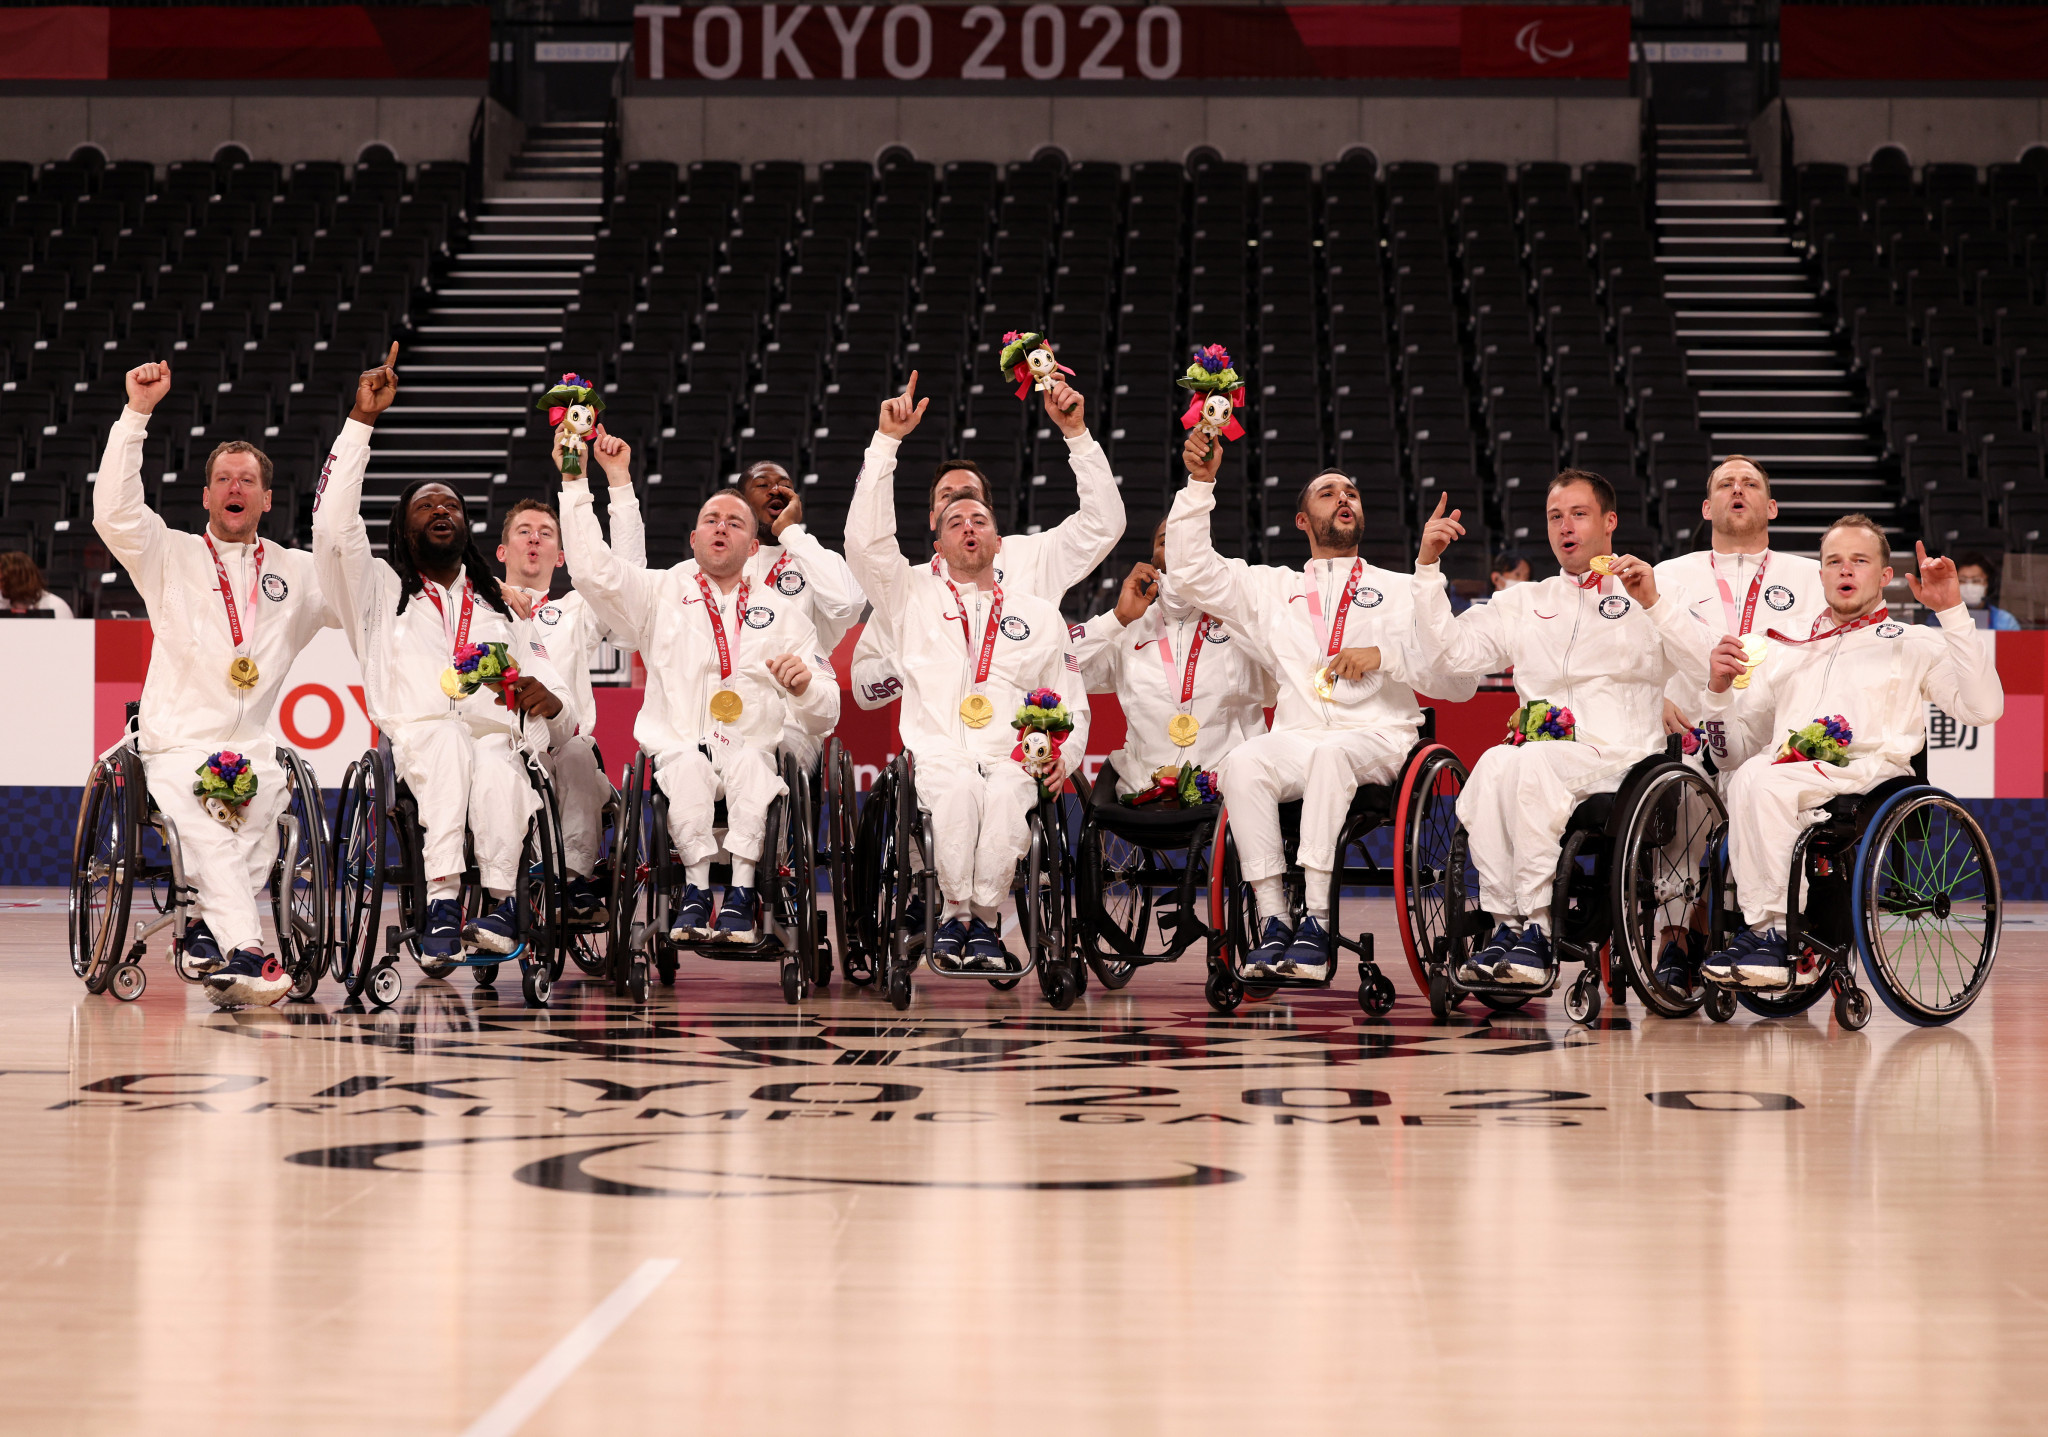 The United States won the gold medal in the men's wheelchair basketball at the Tokyo 2020 Paralympics ©Getty Images